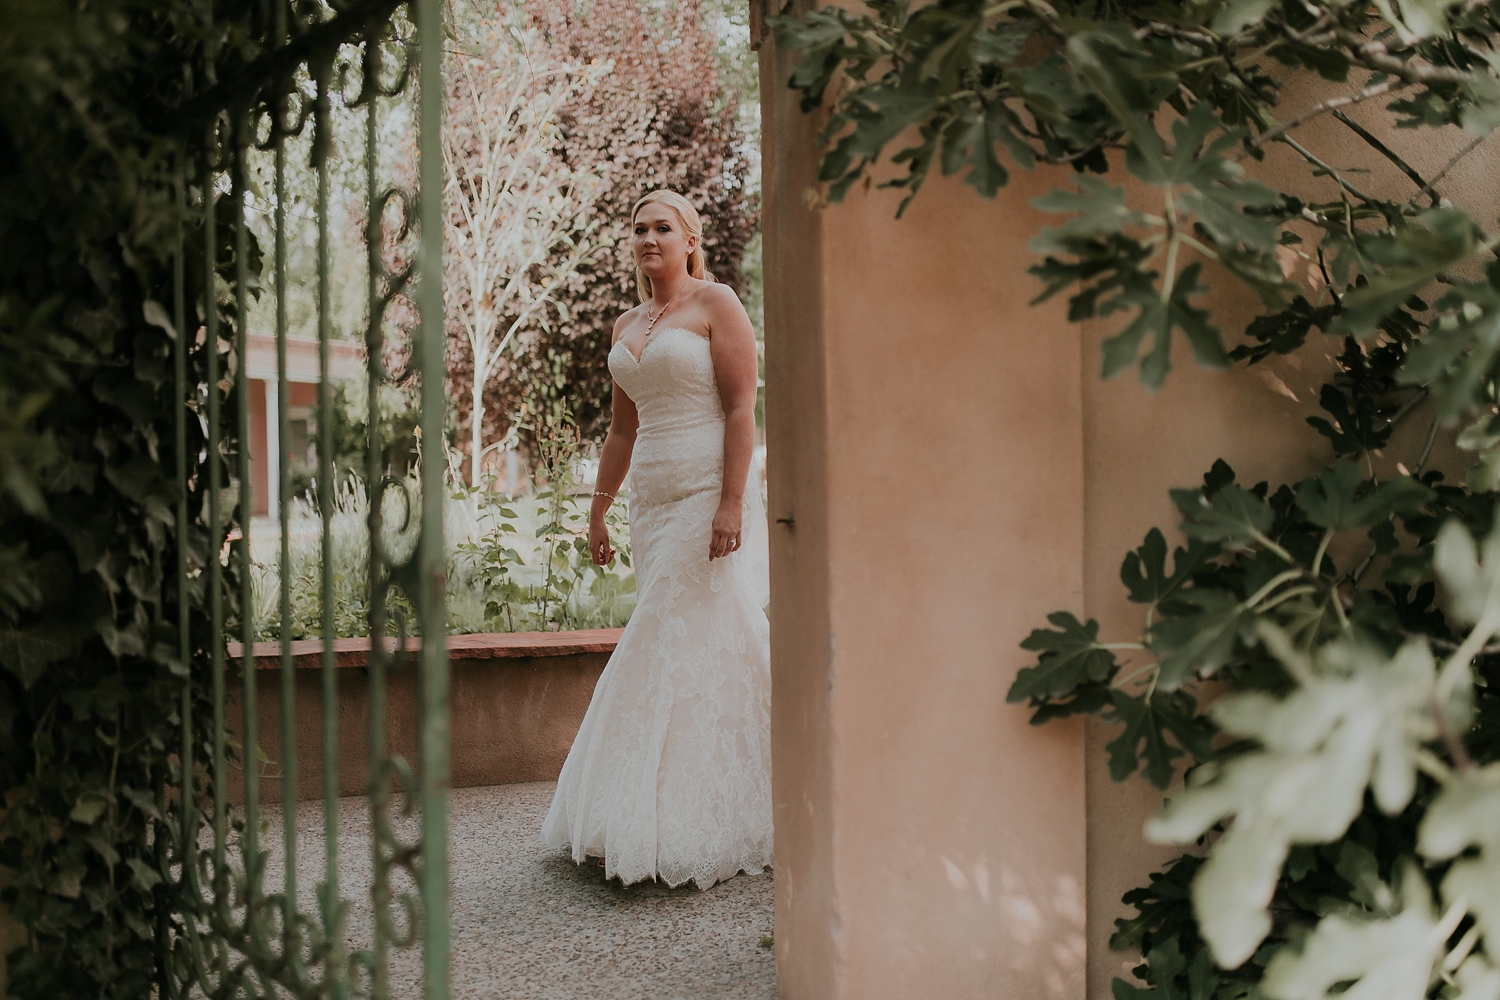 Alicia+lucia+photography+-+albuquerque+wedding+photographer+-+santa+fe+wedding+photography+-+new+mexico+wedding+photographer+-+los+poblanos+wedding+-+los+poblanos+fall+wedding_0025.jpg